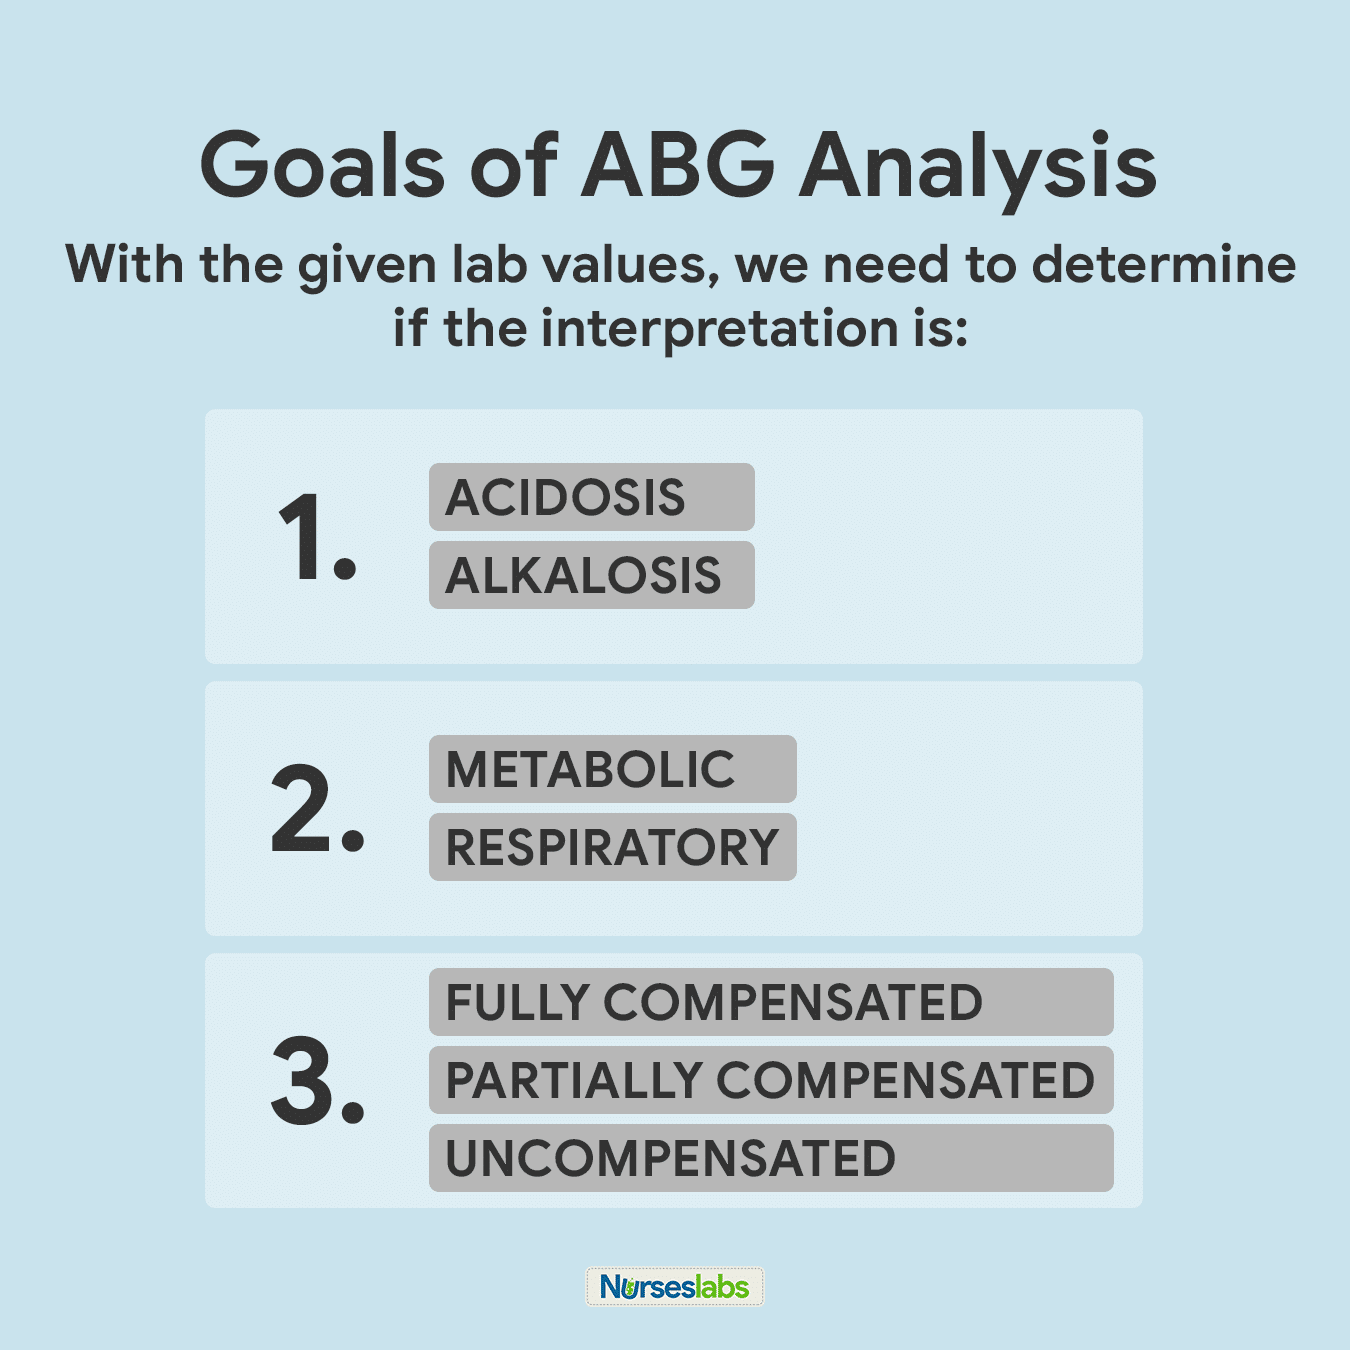 Goals of ABG Analysis using Tic-Tac-Toe Method: To simplify this technique even further, keep these goals in mind.